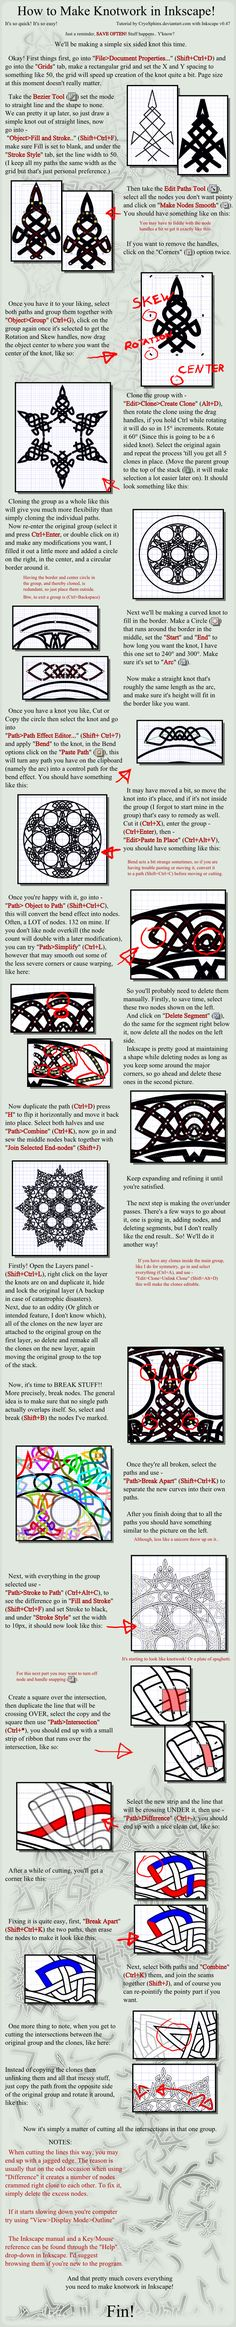 Knotwork Tutorial for Inkscape. This could be done in either Illustrator or Photoshop as well - the principals are the same.